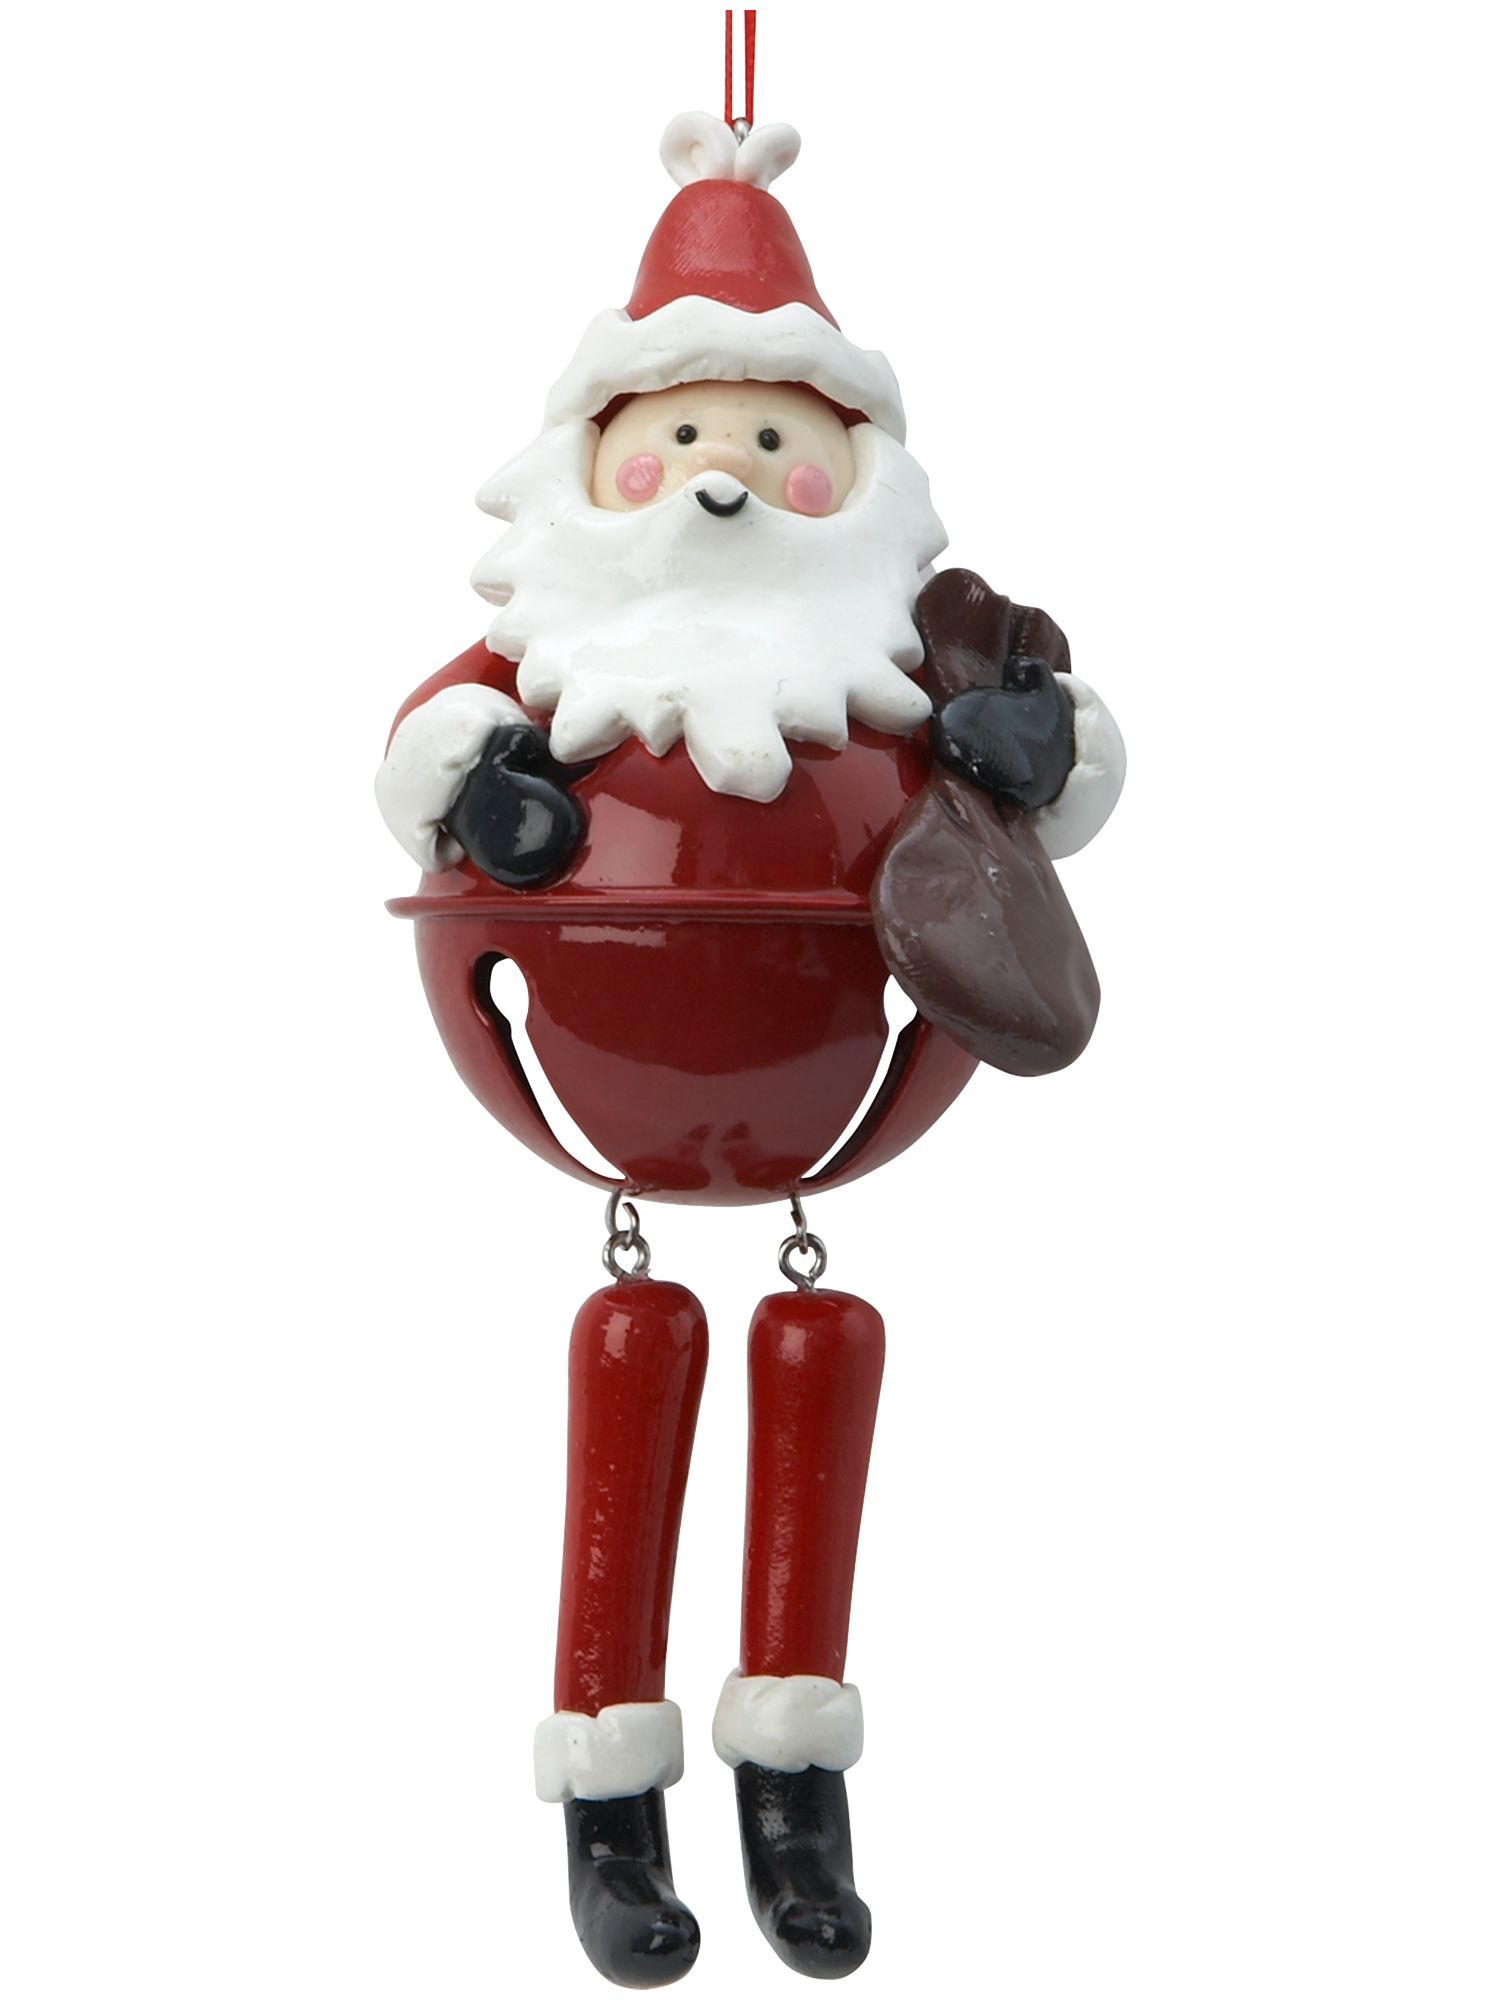 Frosty Santa bell with dangly legs